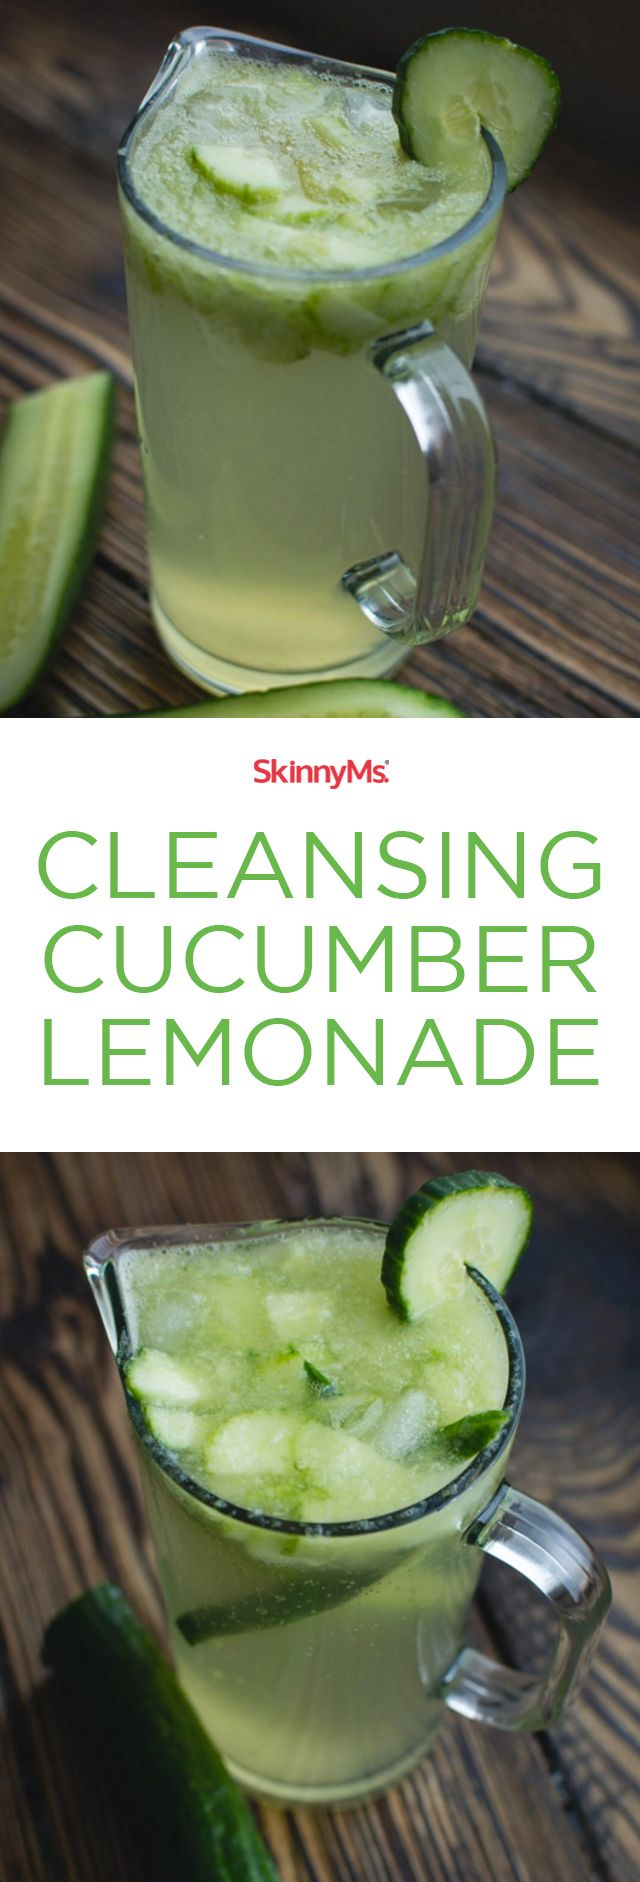 Boost your fat loss with this Cleansing Cucumber Lemonade! #detox #cleanse